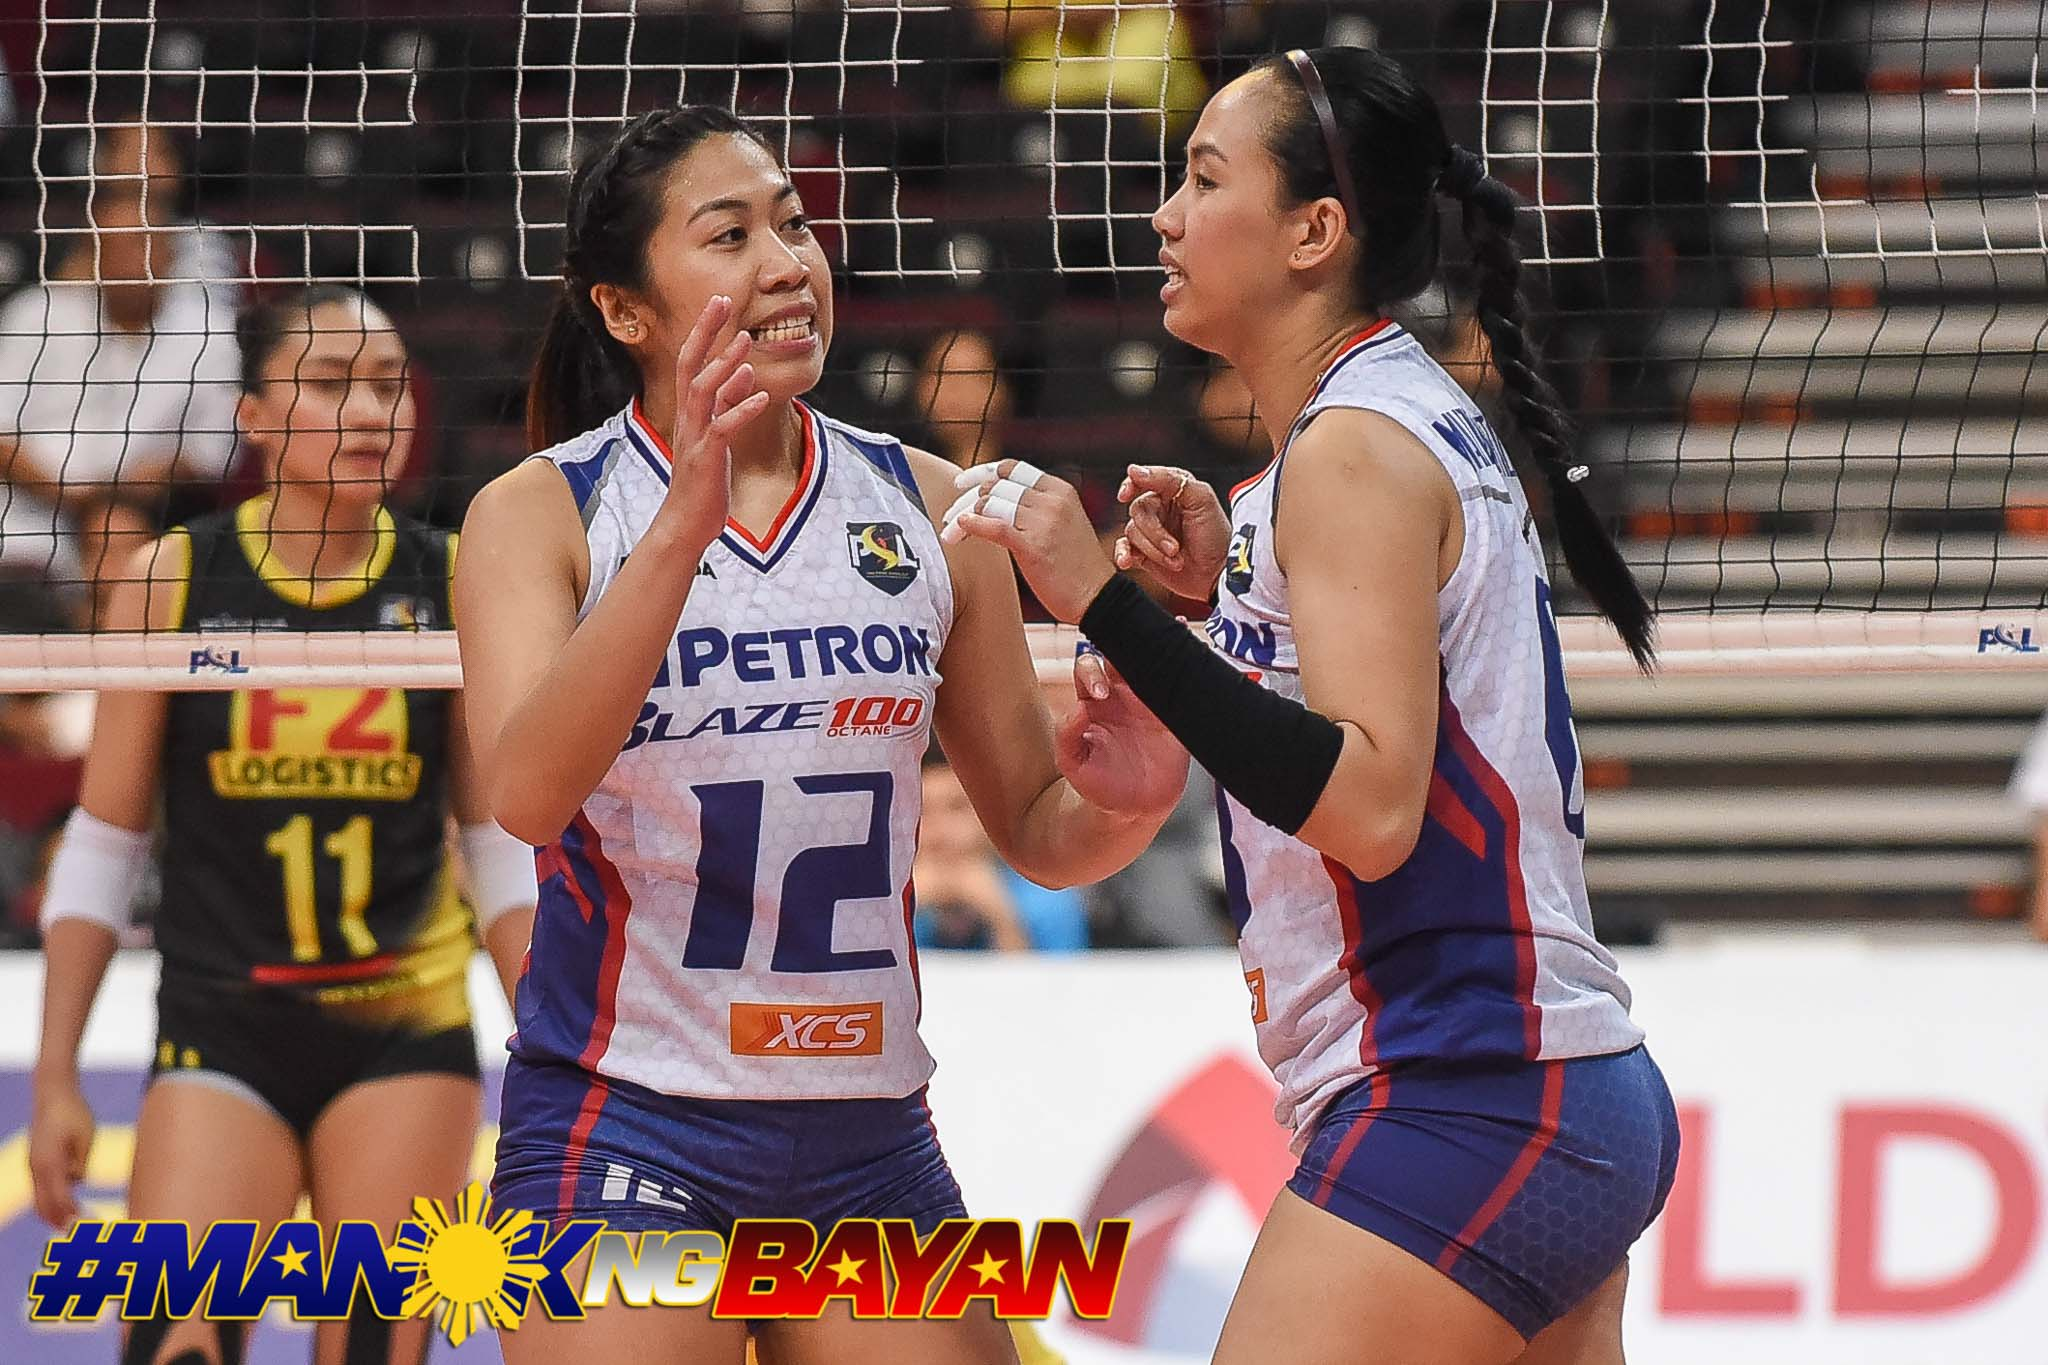 Tiebreaker Times Nothing for Petron to do but stay positive, says Shaq Delos Santos News PSL Volleyball  Shaq delos Santos Petron Blaze Spikers 2018 PSL Season 2018 PSL All Filipino Conference